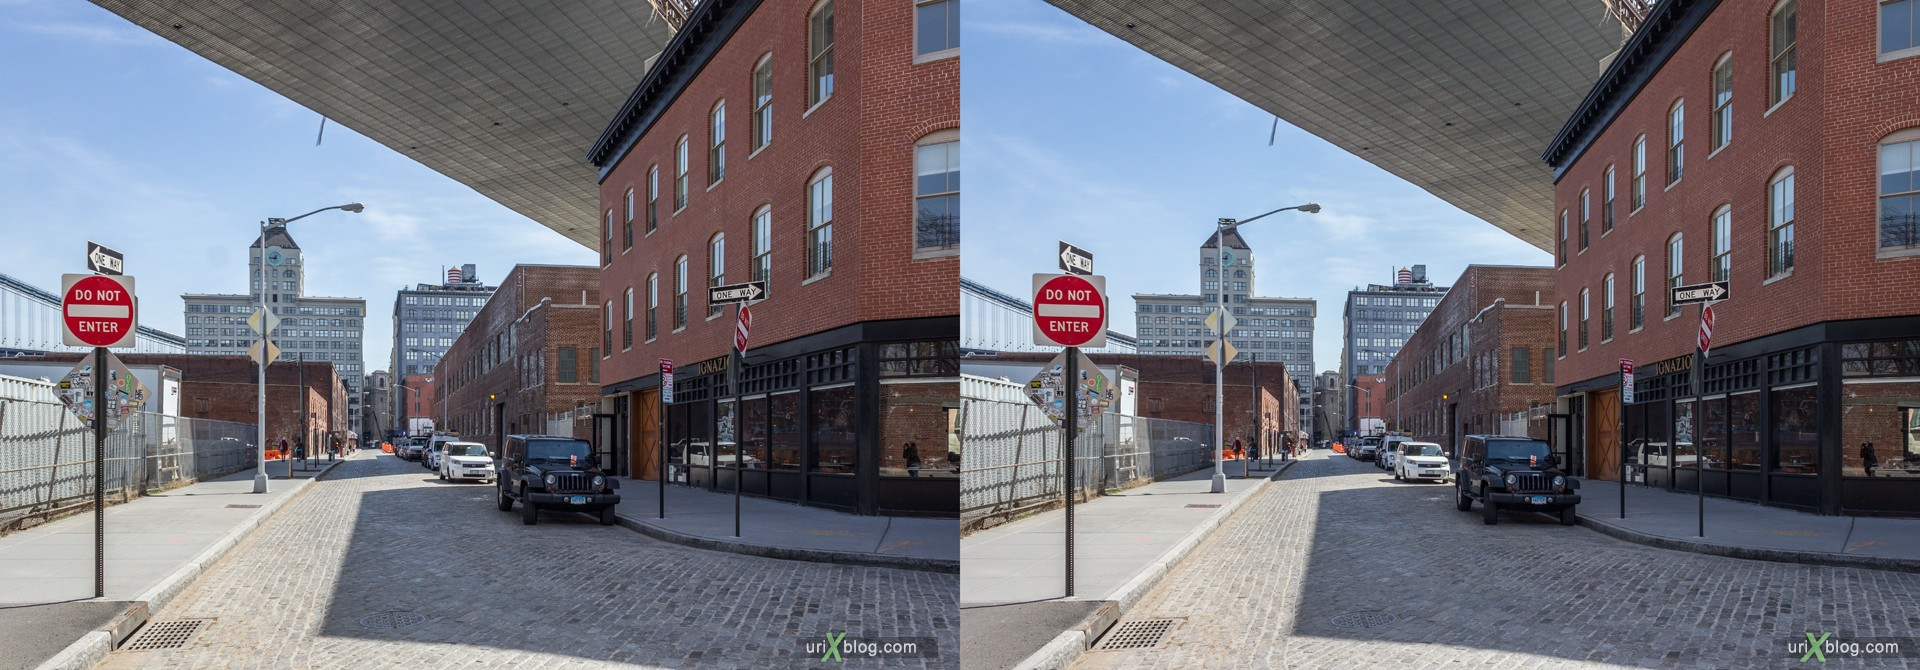 2013, Water street, Brooklyn, NYC, New York City, USA, 3D, stereo pair, cross-eyed, crossview, cross view stereo pair, stereoscopic